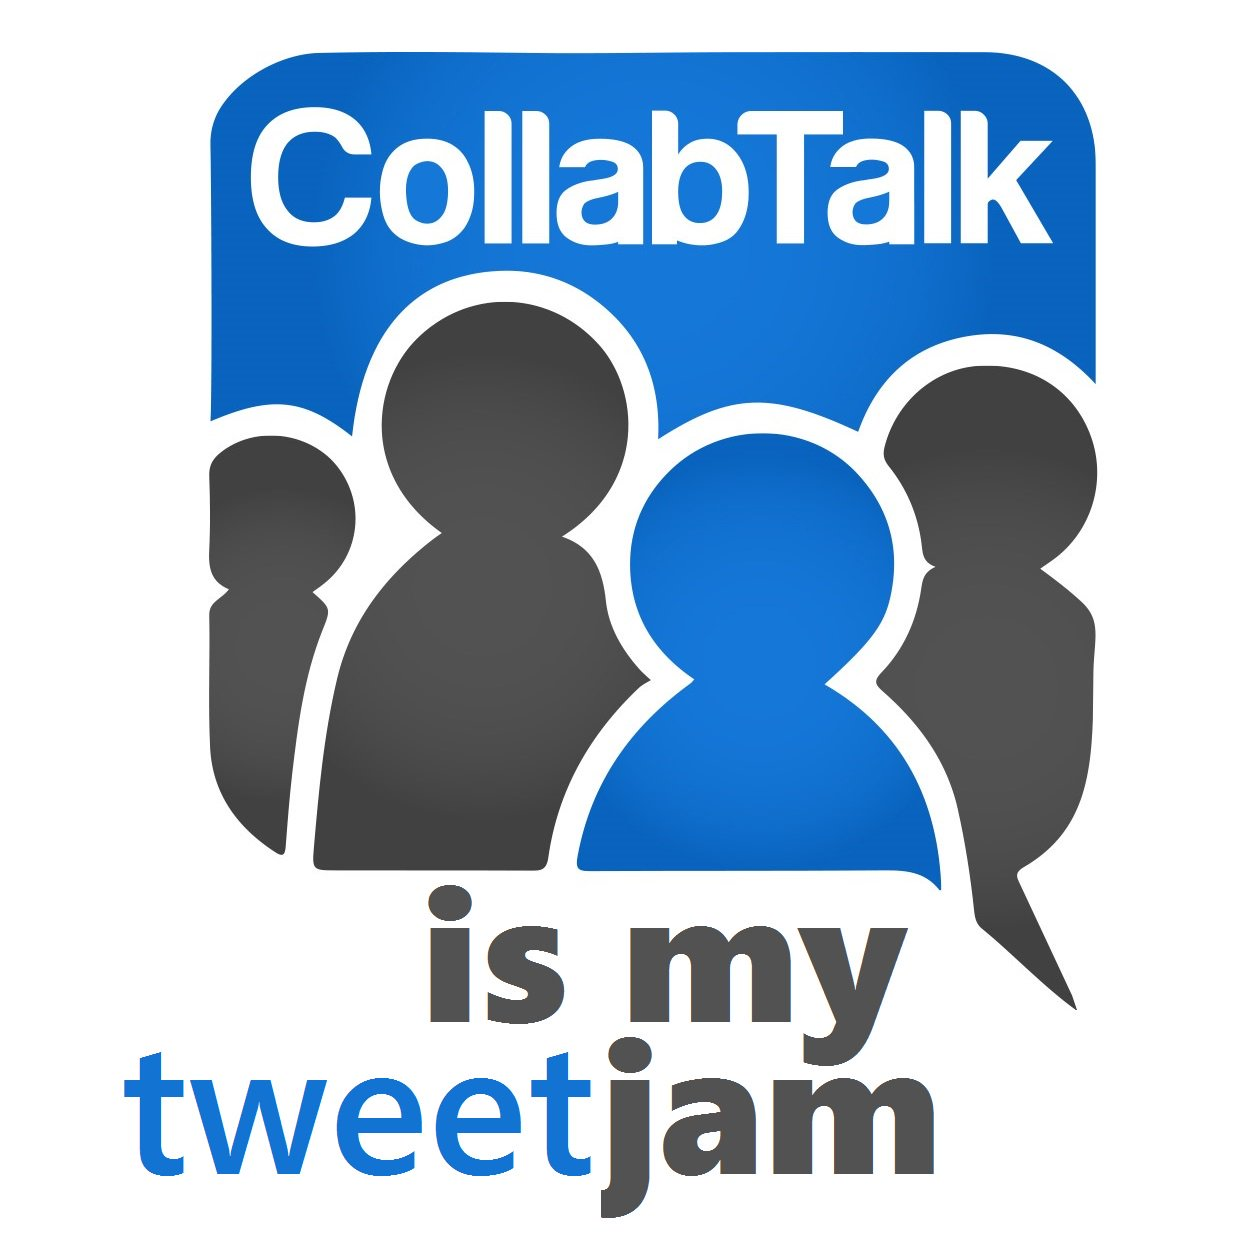 The #CollabTalk tweetjam is happening this week. Join the discussion: https://t.co/SUWqDOUX7v https://t.co/QCKlFactlk